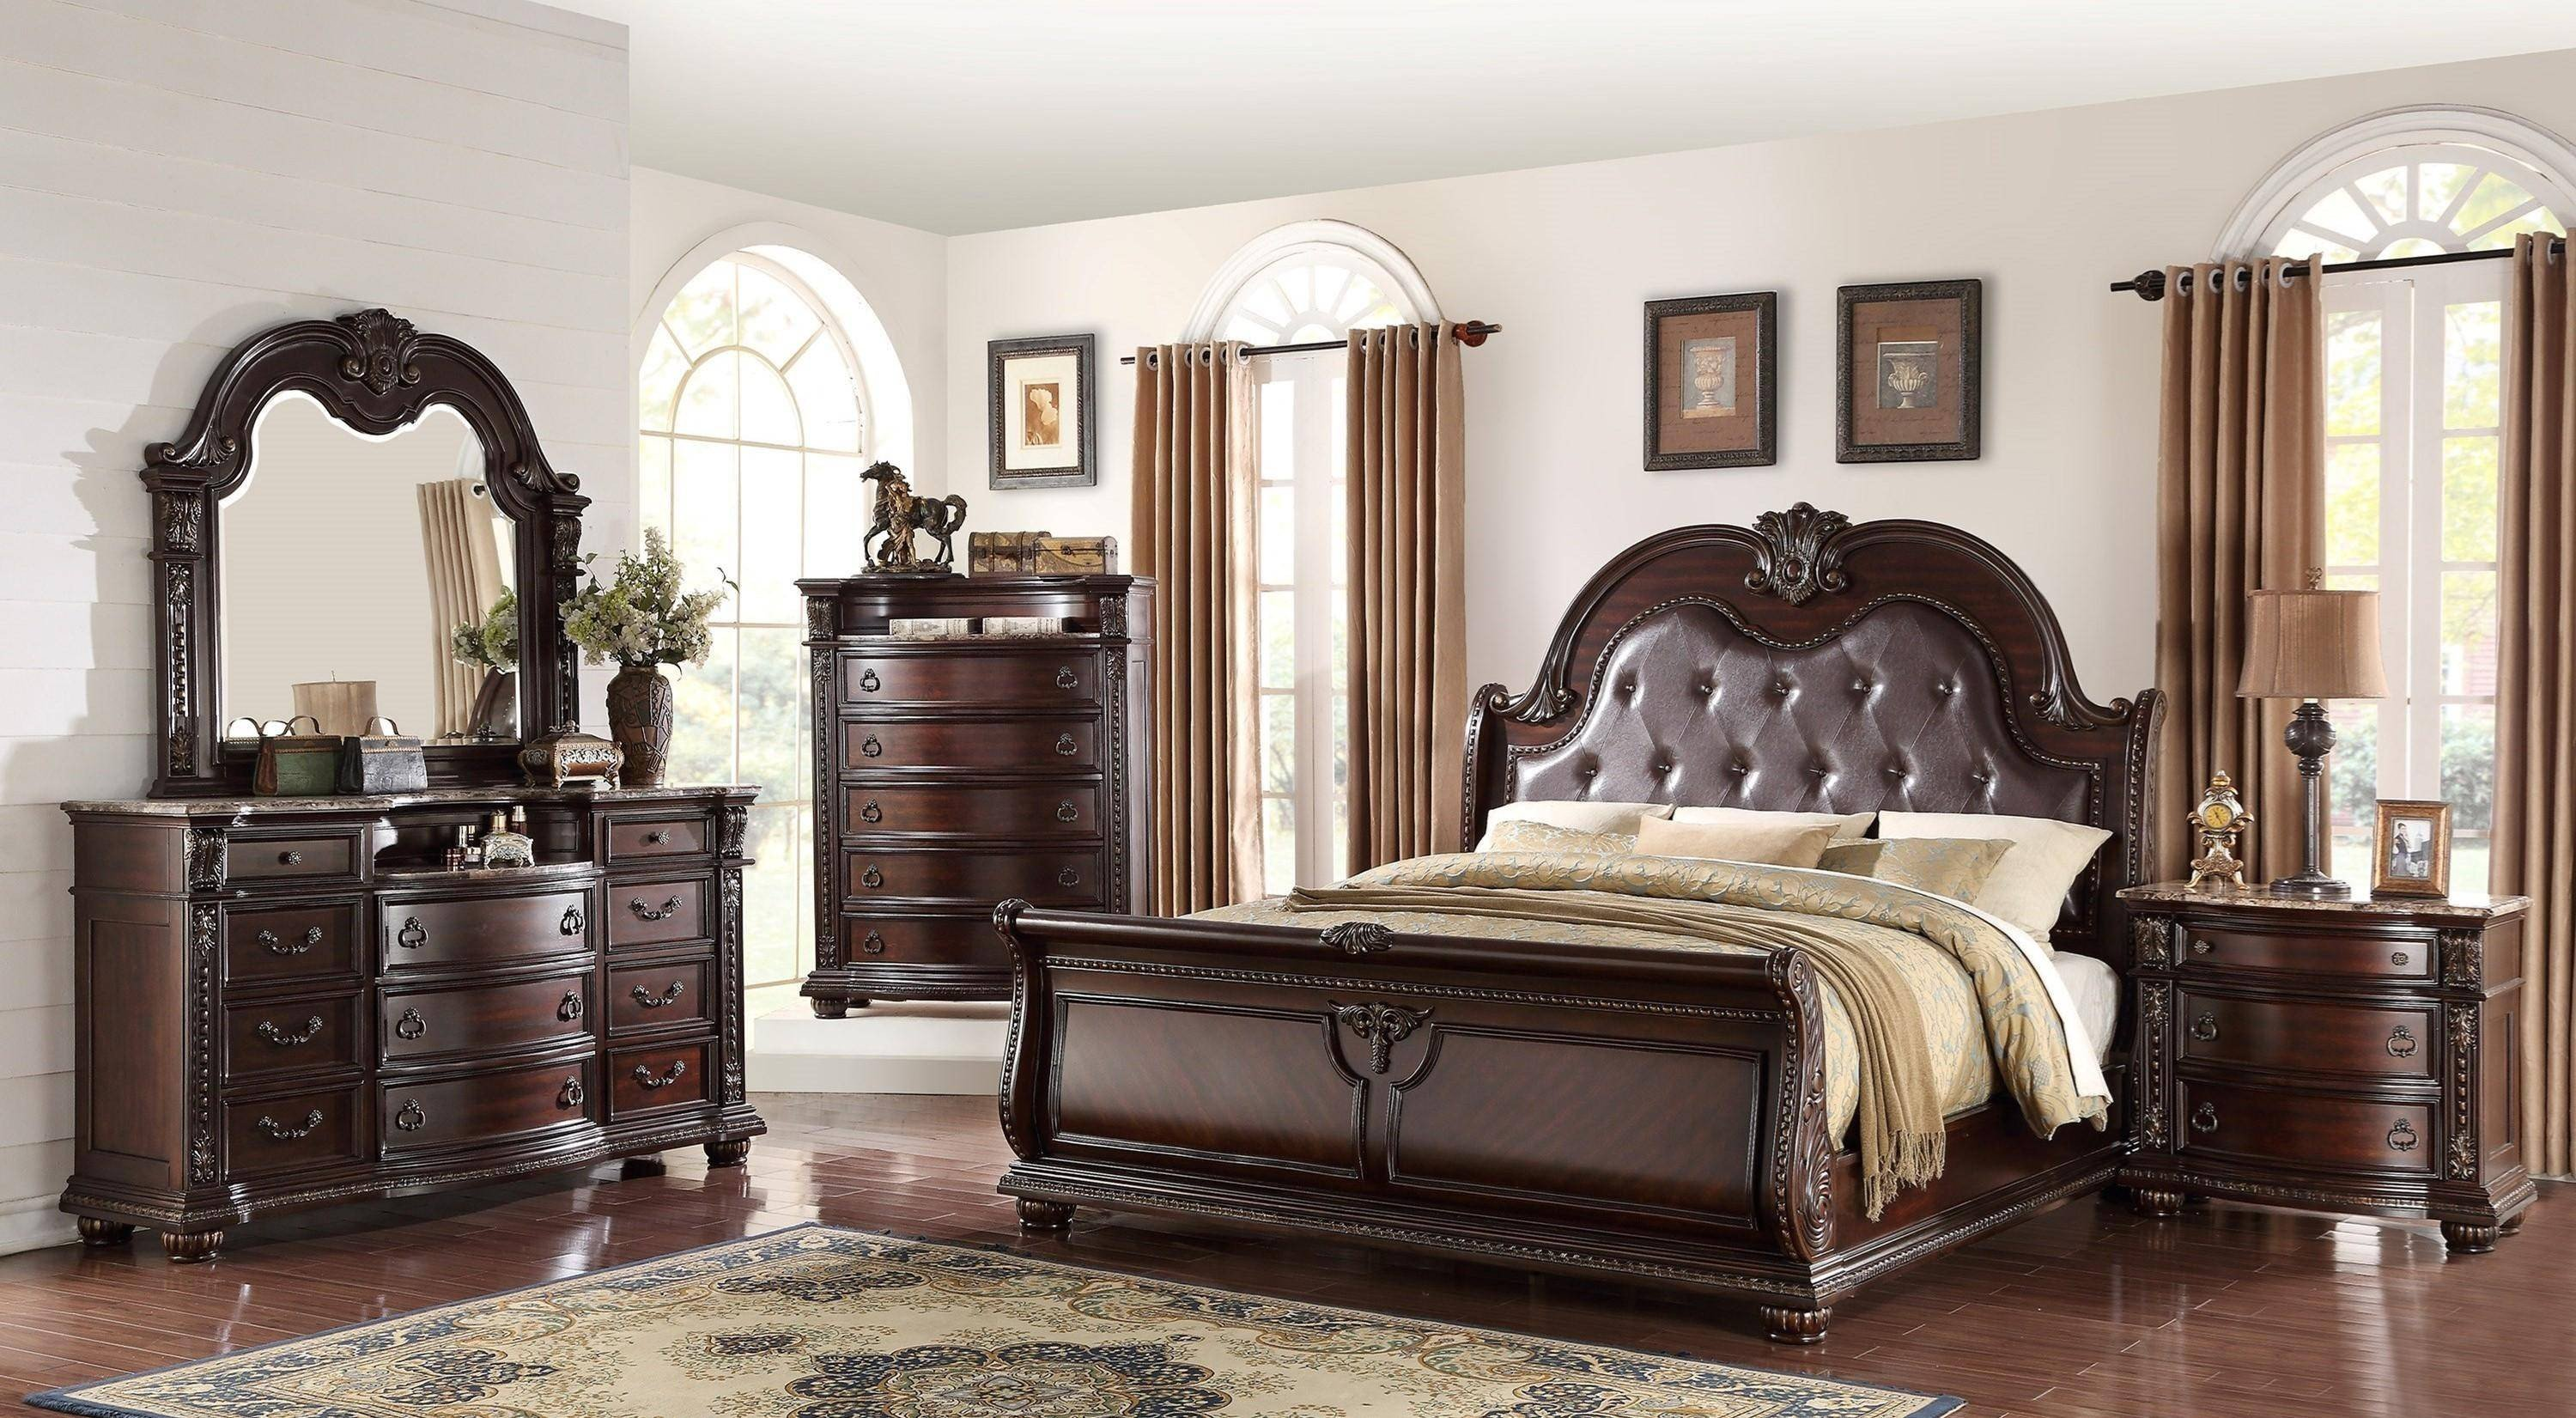 Bedroom Set Full Size Bed Inspirational Crown Mark B1600 Stanley Cherry Finish solid Wood King